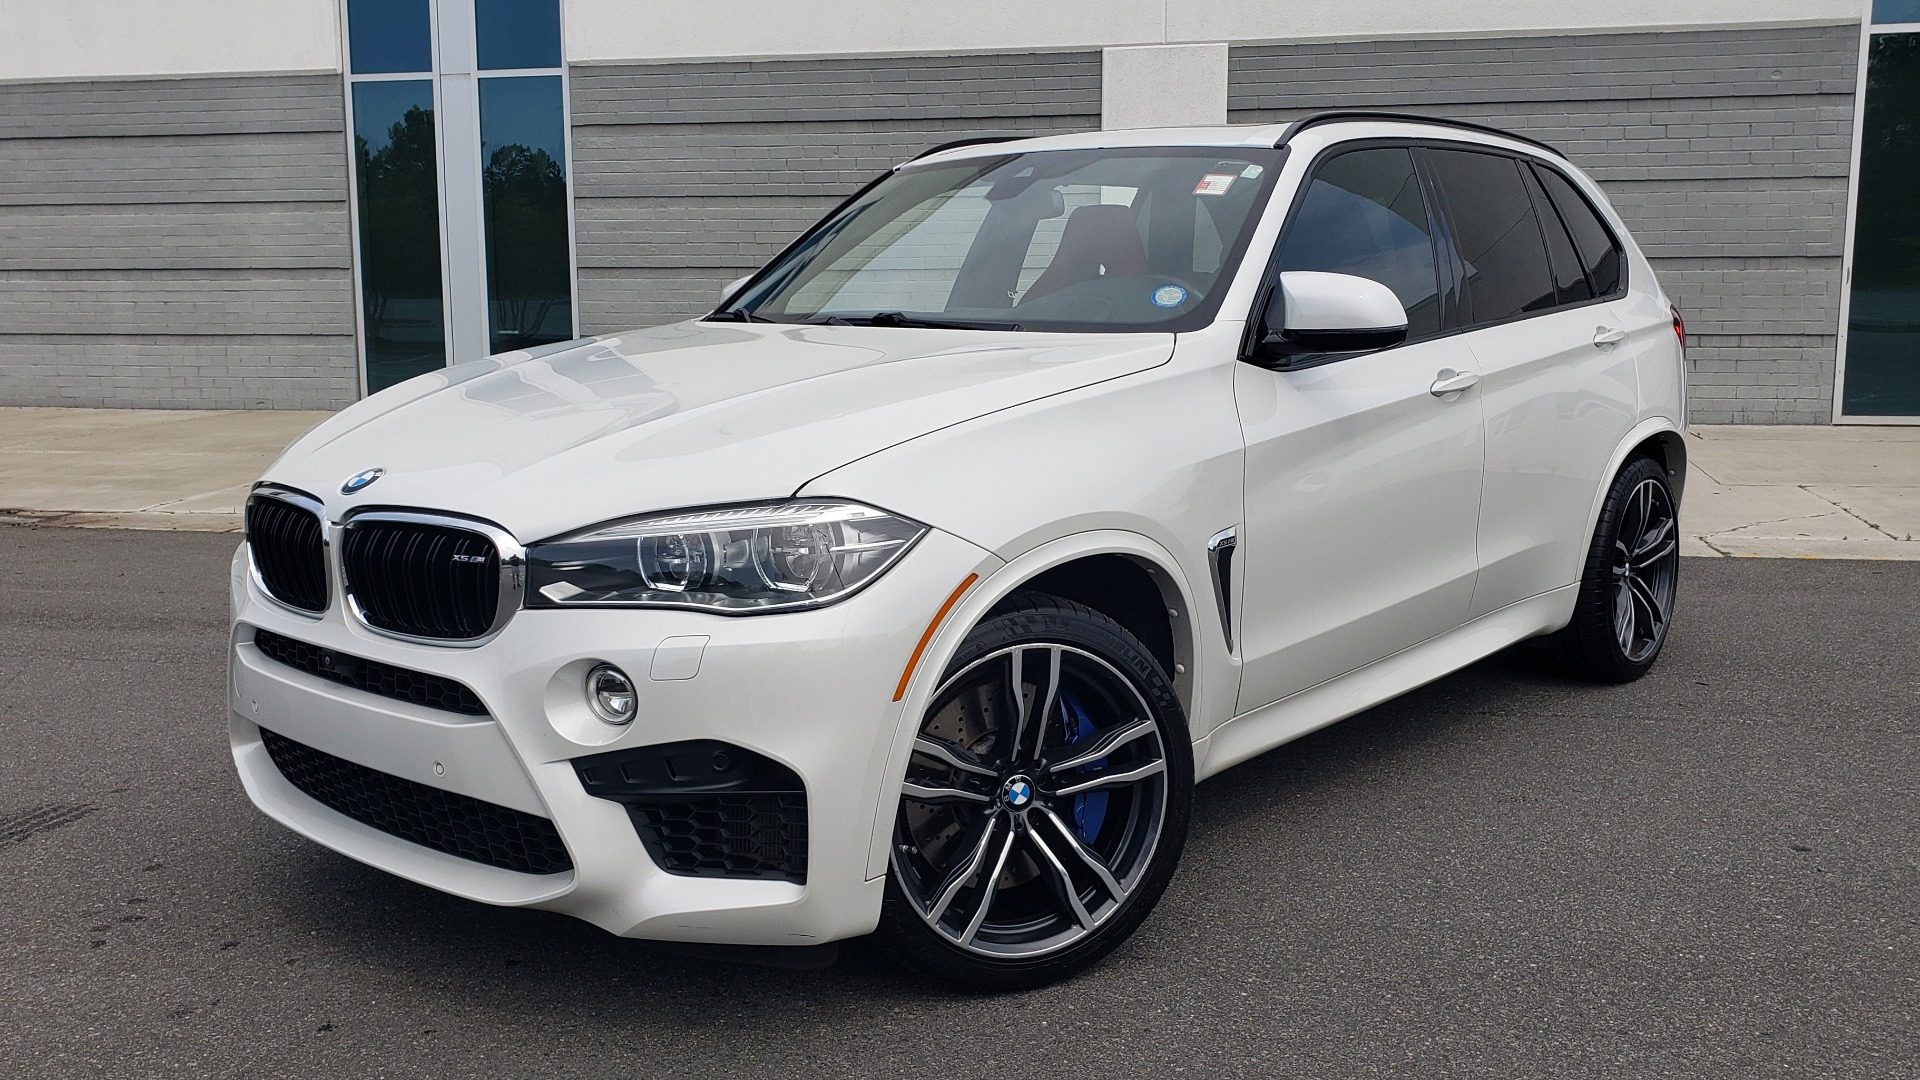 Used 2017 BMW X5 M EXECUTIVE PKG / NAV / DRVR ASST / BSM / HUD / HTD STS / WIFI for sale $61,995 at Formula Imports in Charlotte NC 28227 1